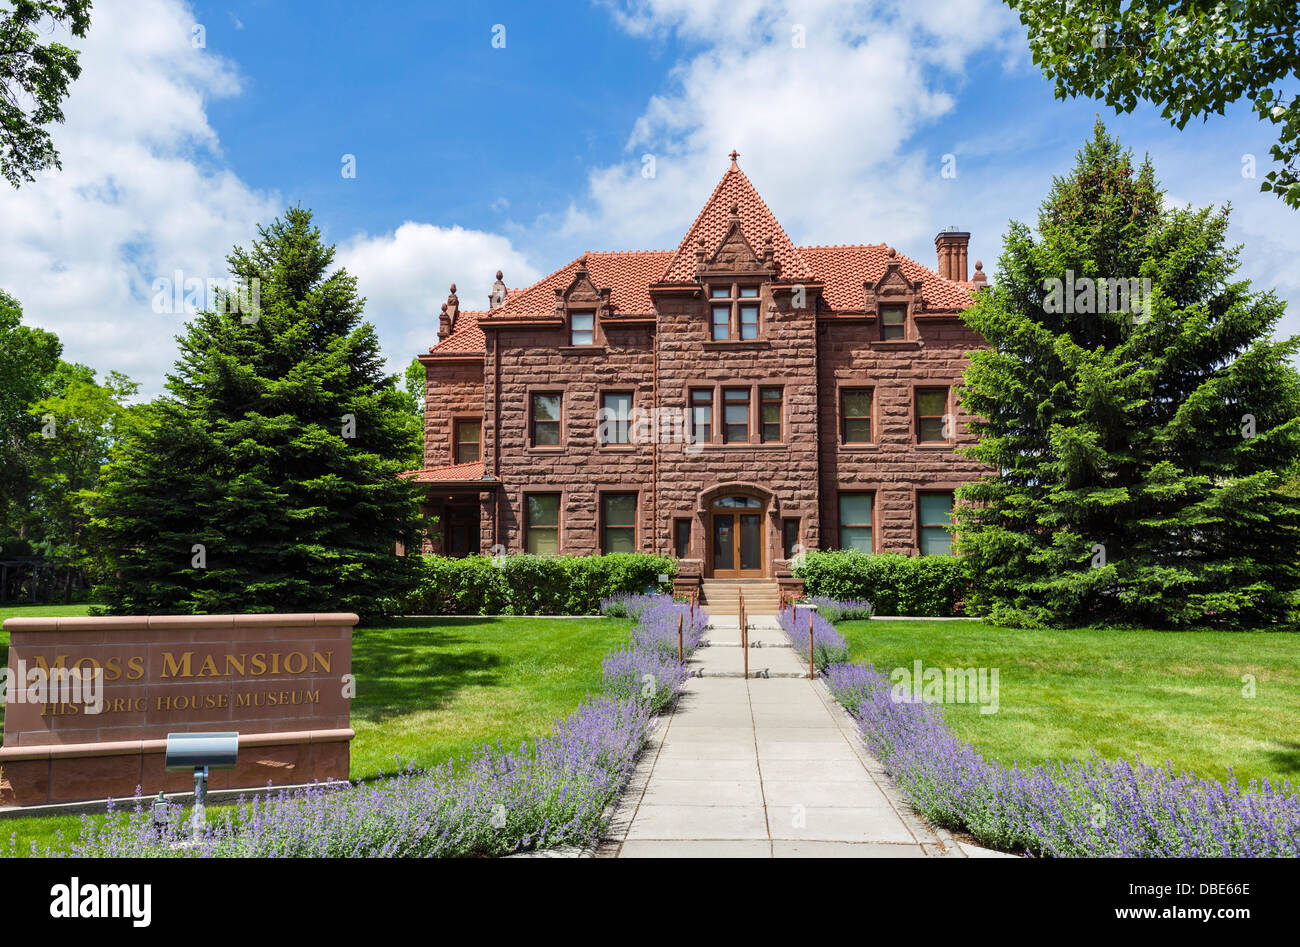 Moss Mansion Historic House Museum Division Street Billings Stock Photo Royalty Free Image